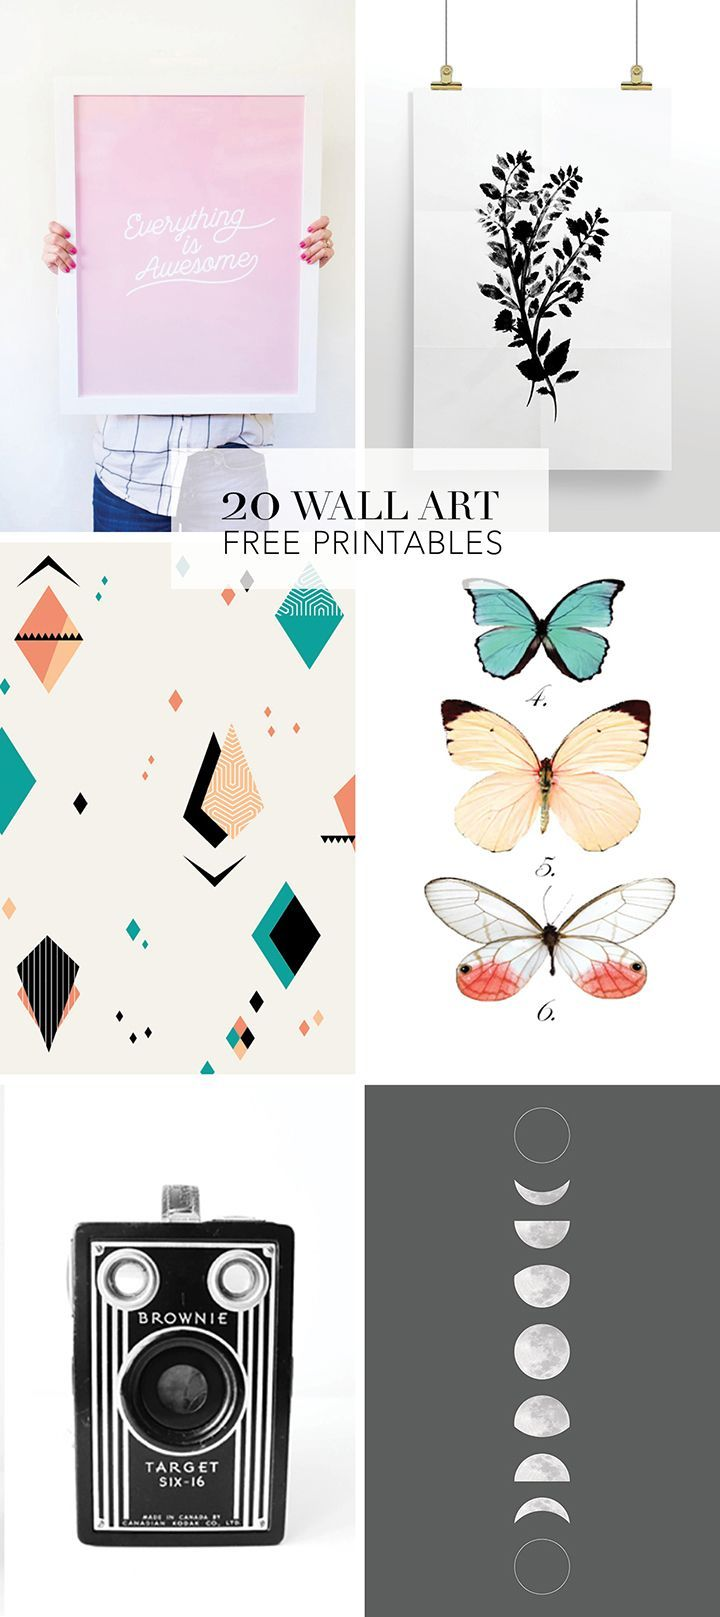 Good 20 Favorite Wall Art Free Printables Gallery